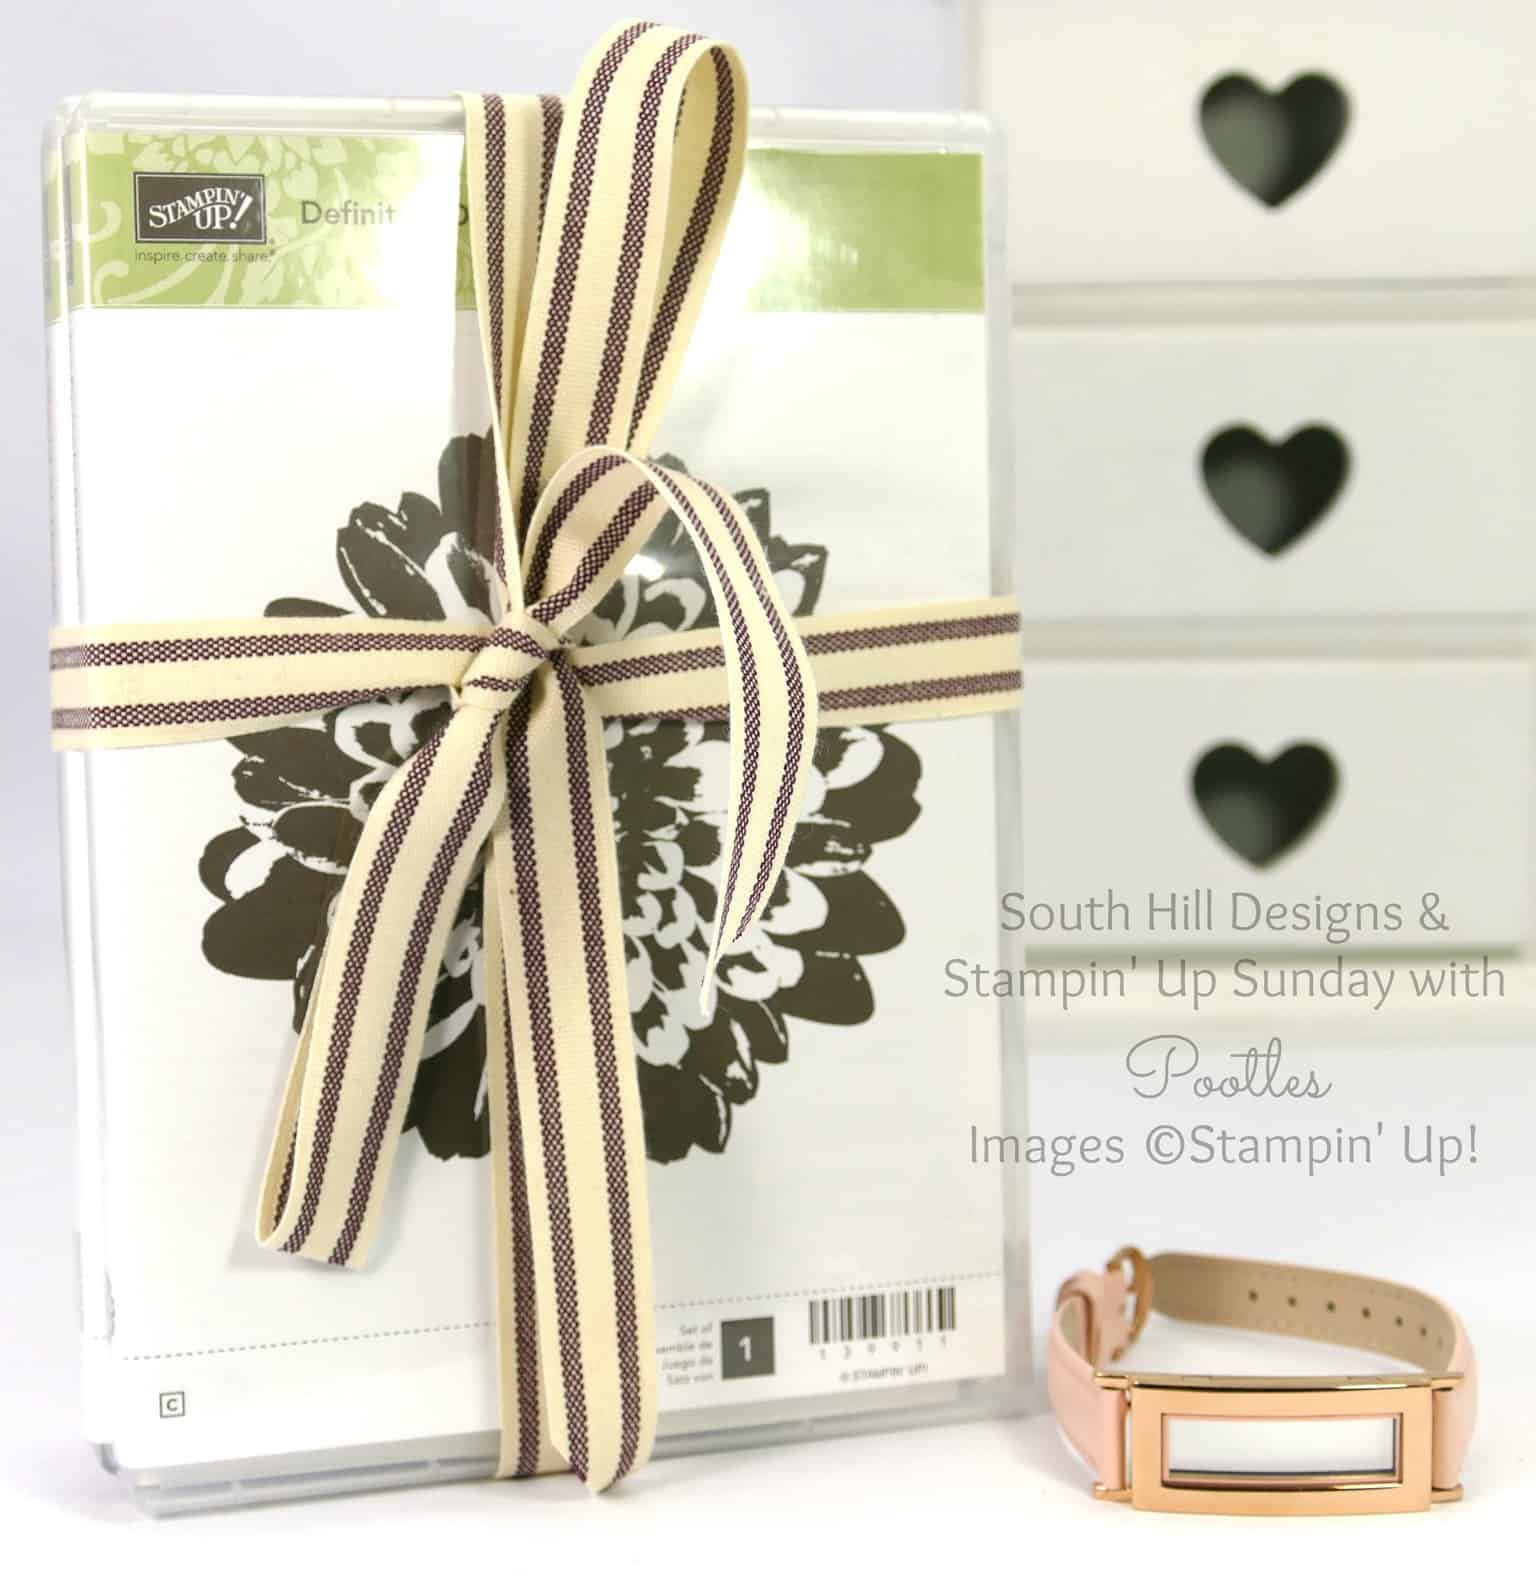 South Hill Designs & Stampin Up Sunday Huge Giveaway for BOTH!!!